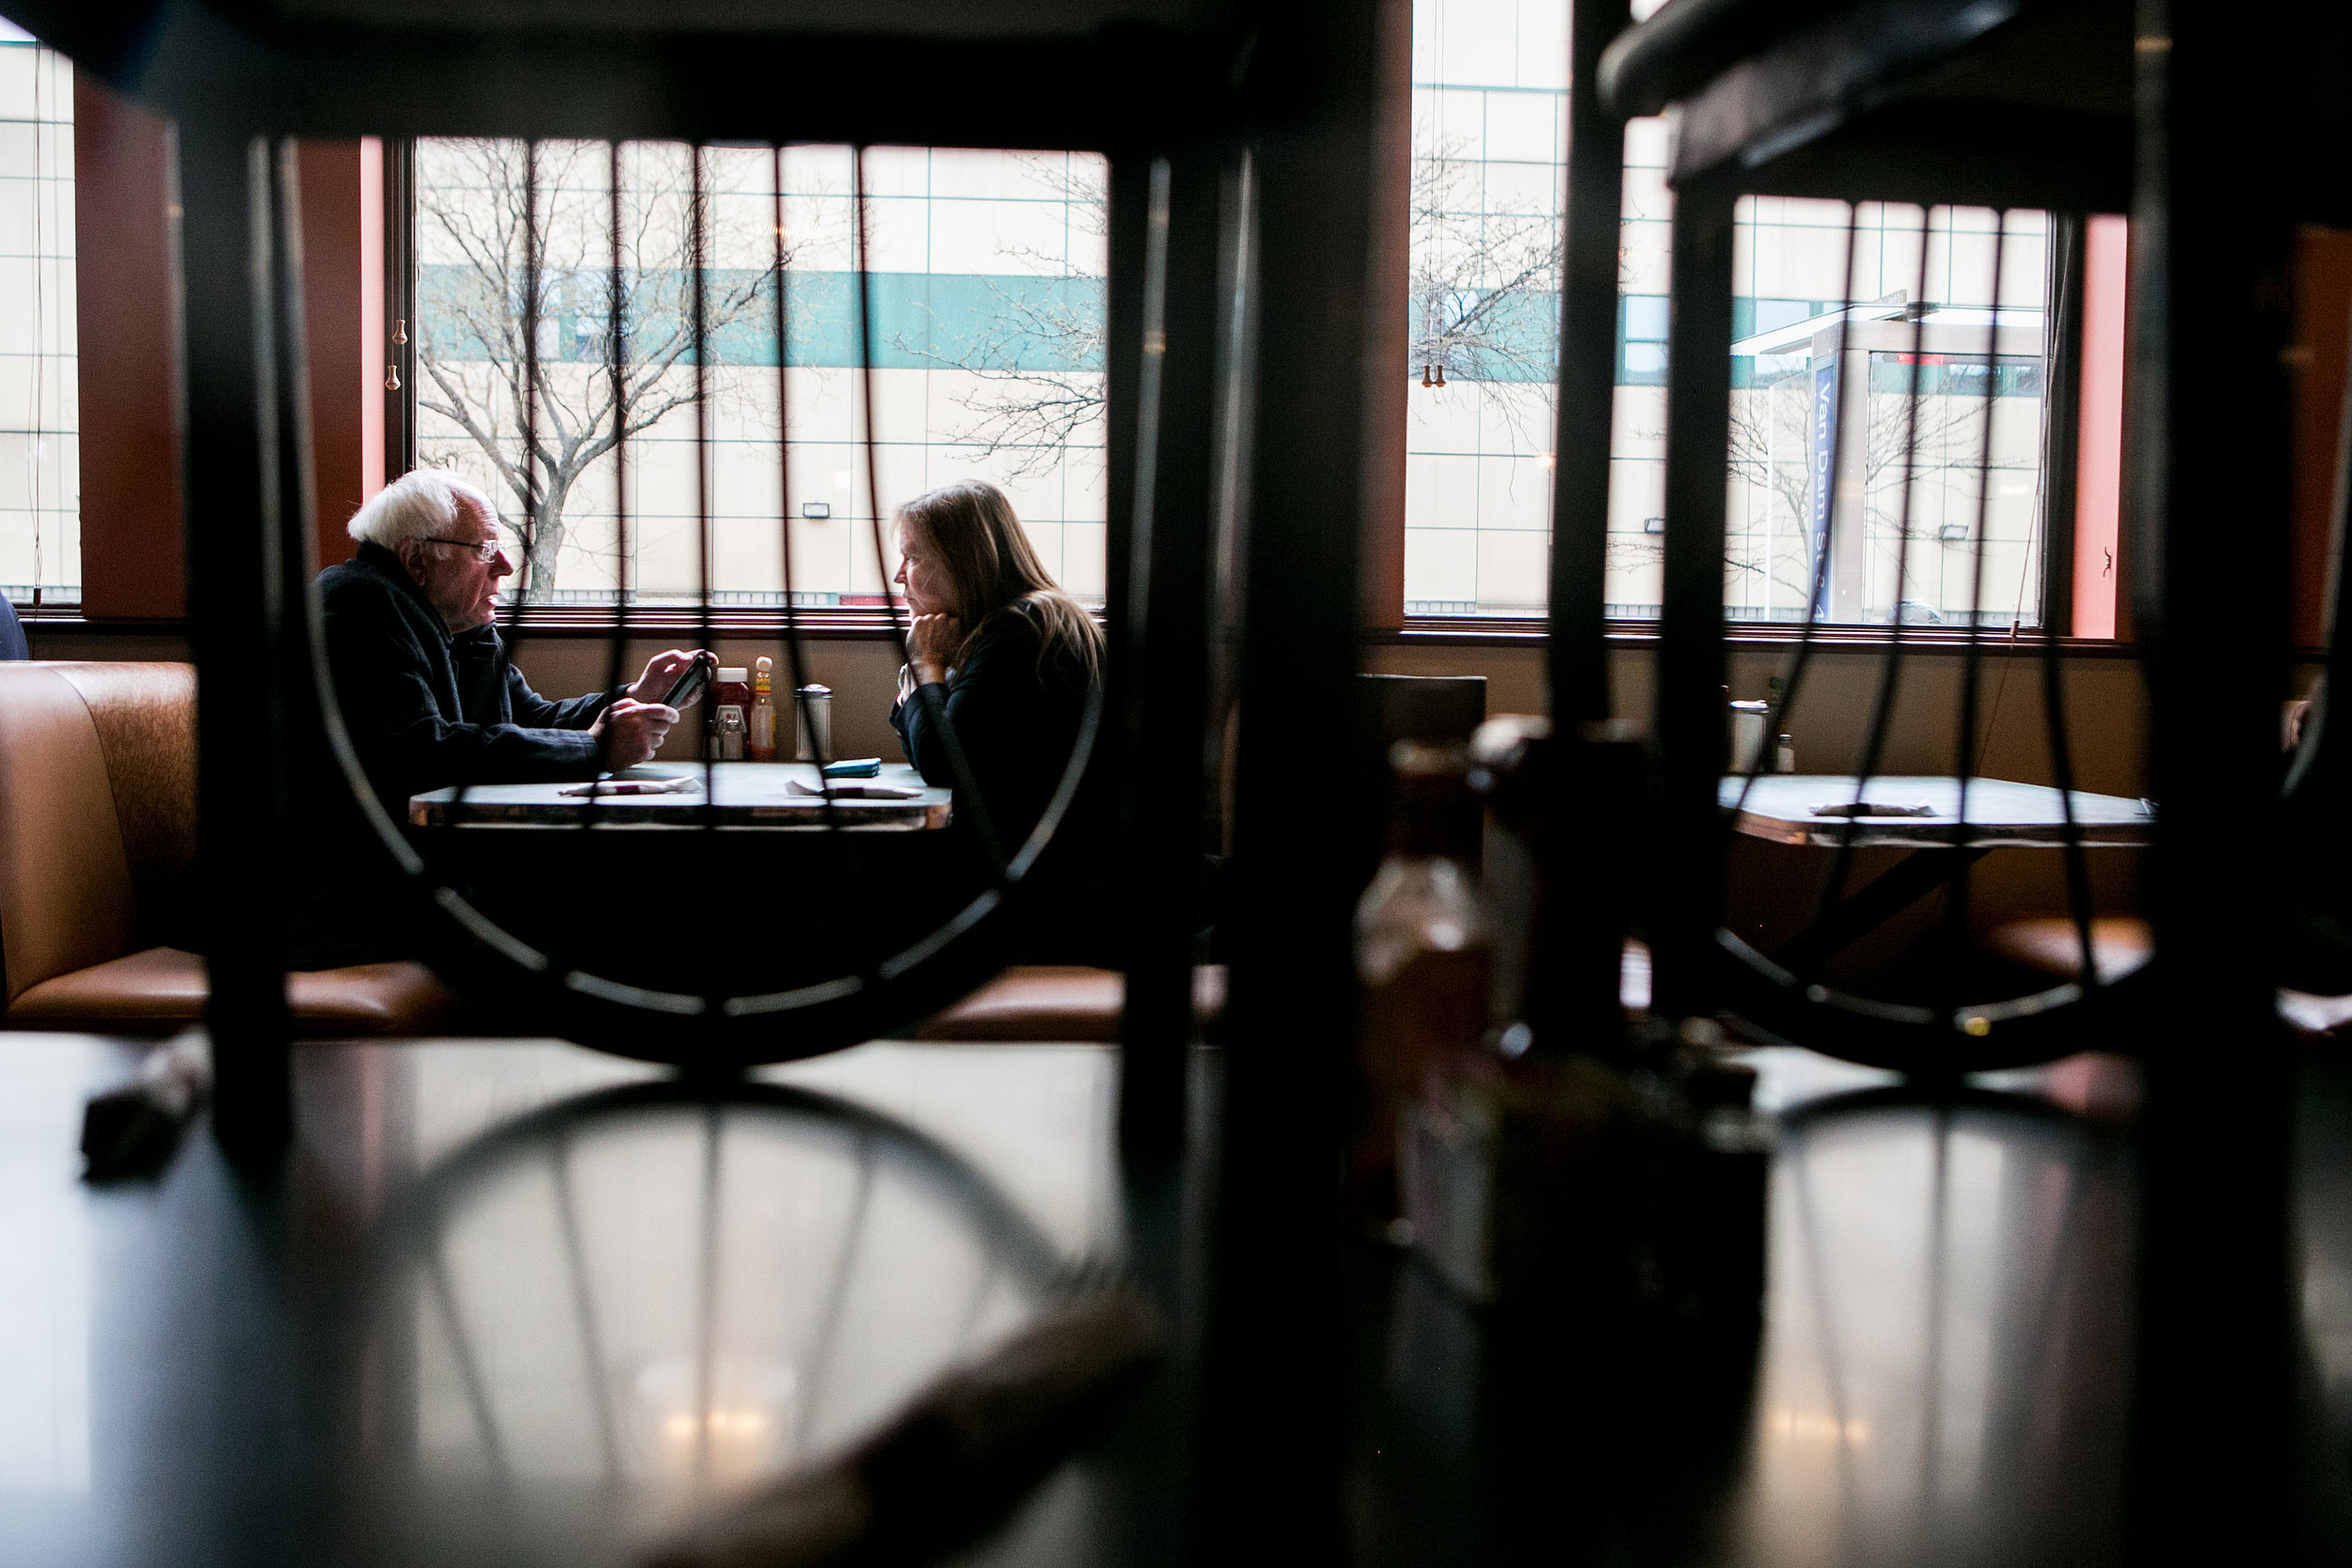 Bernie and his wife Jane have lunch at Van Dam Diner in Queens.